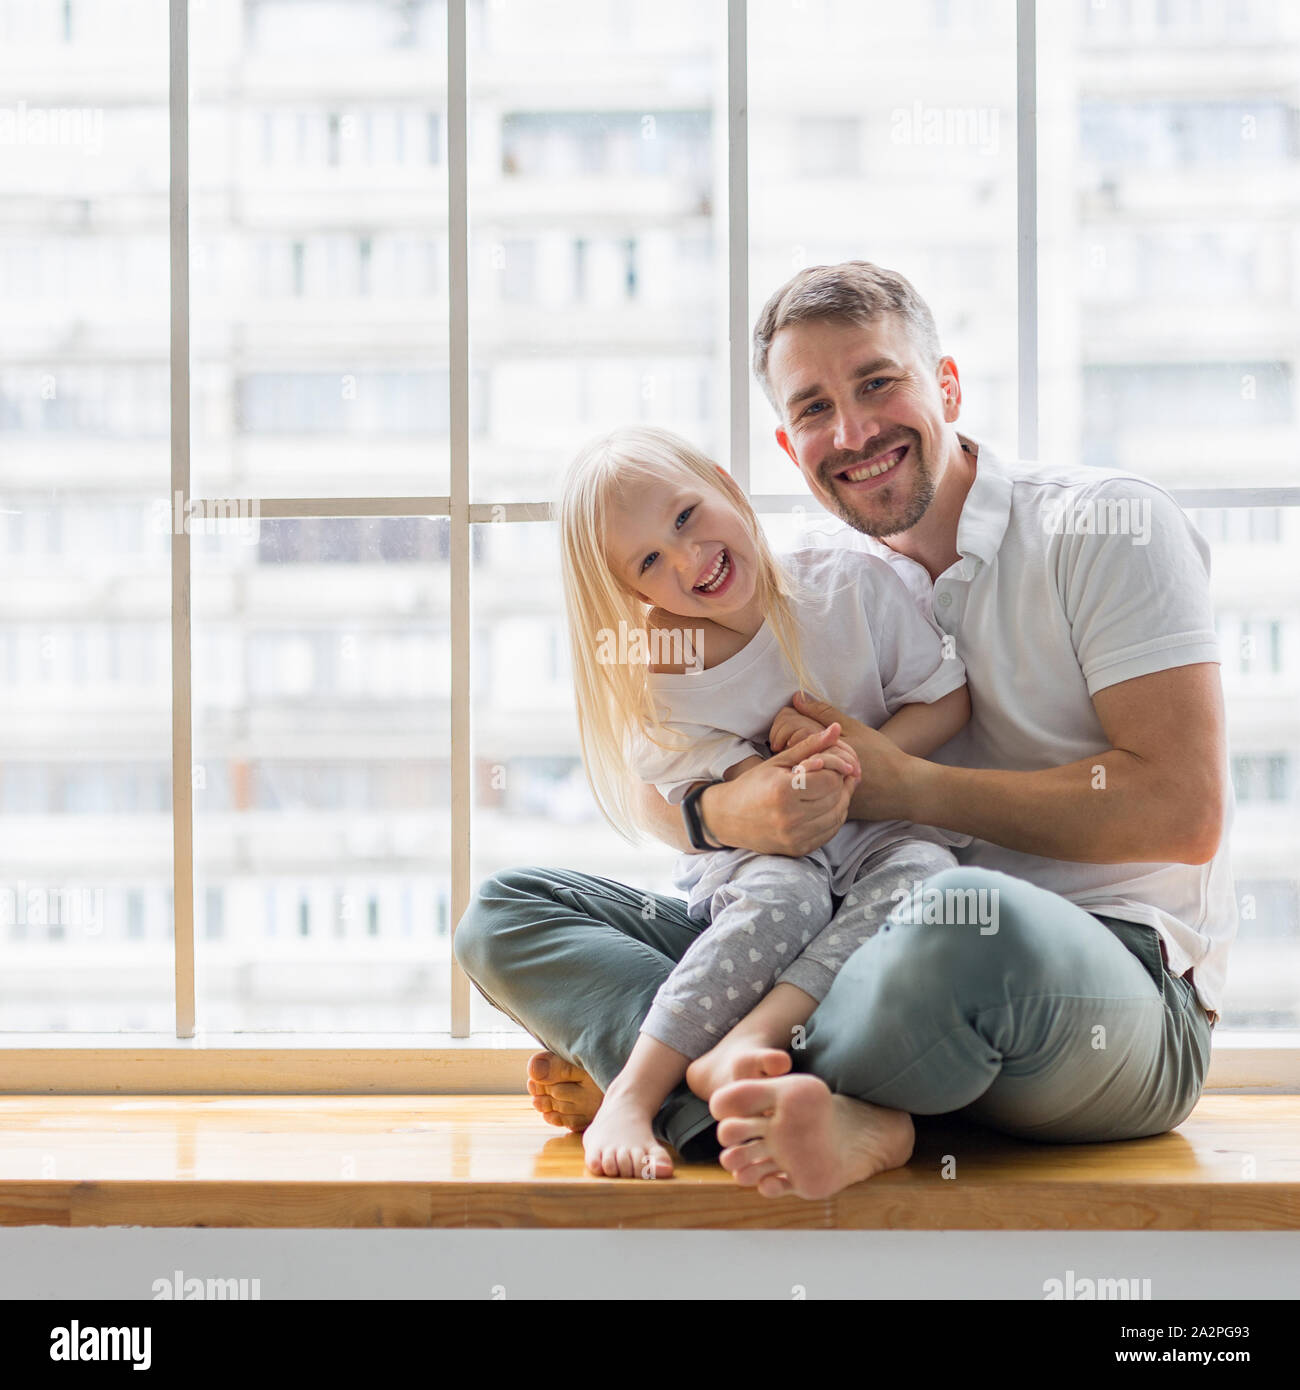 Young Man Holding Her 3 5 Years Old Daughter While Sitting On